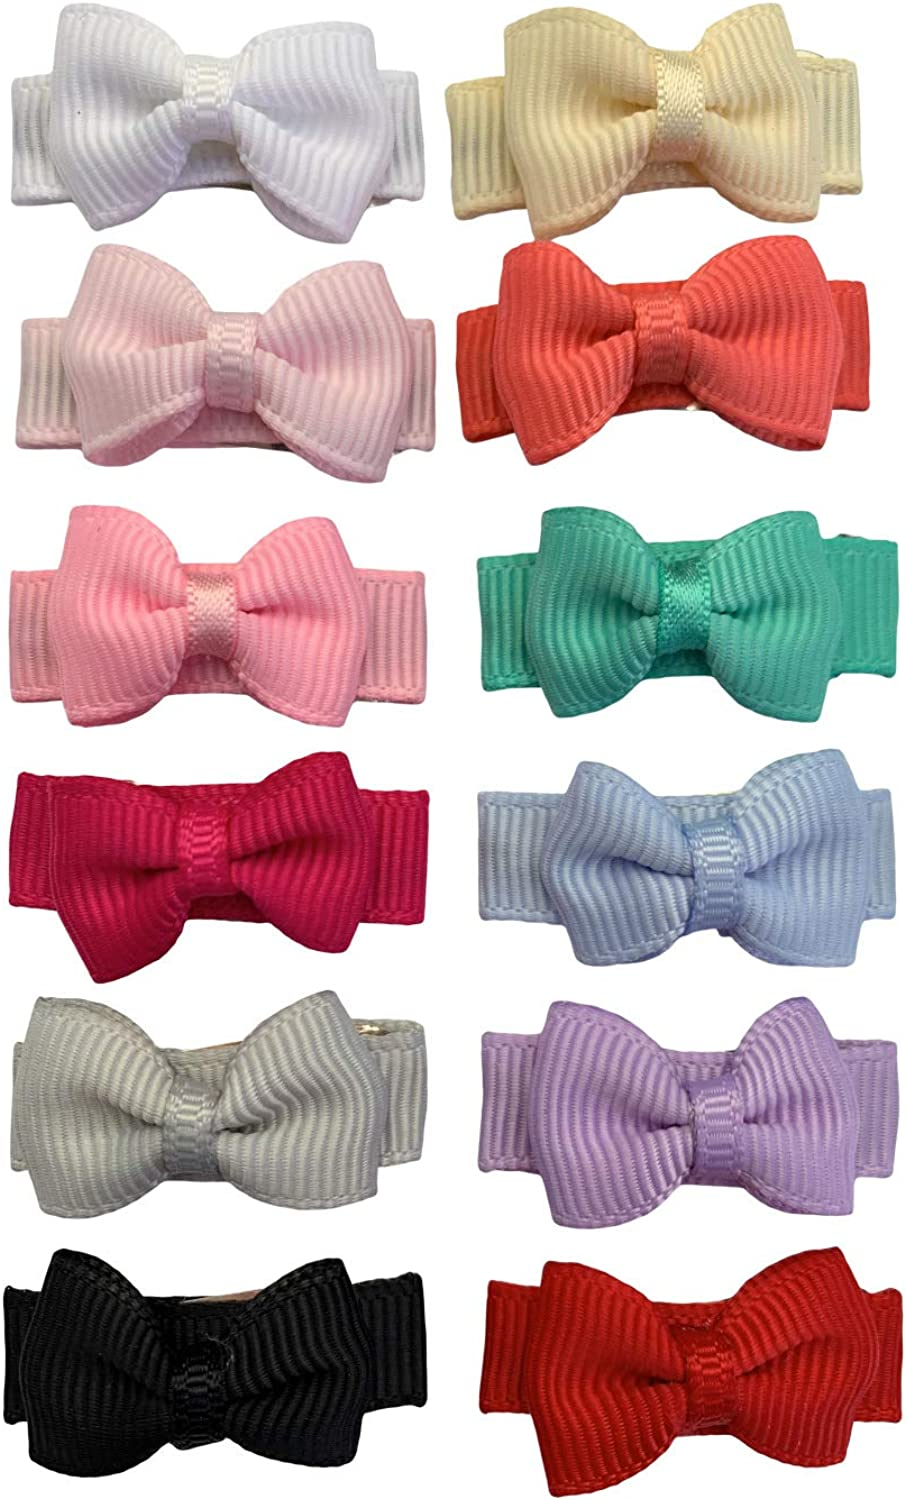 12 Pcs Snap Hair Clips for Hair, Hair Accessories, Newborn Infant Toddler Baby Girls Gifts, Girl, Bows, Barrettes for Girls.